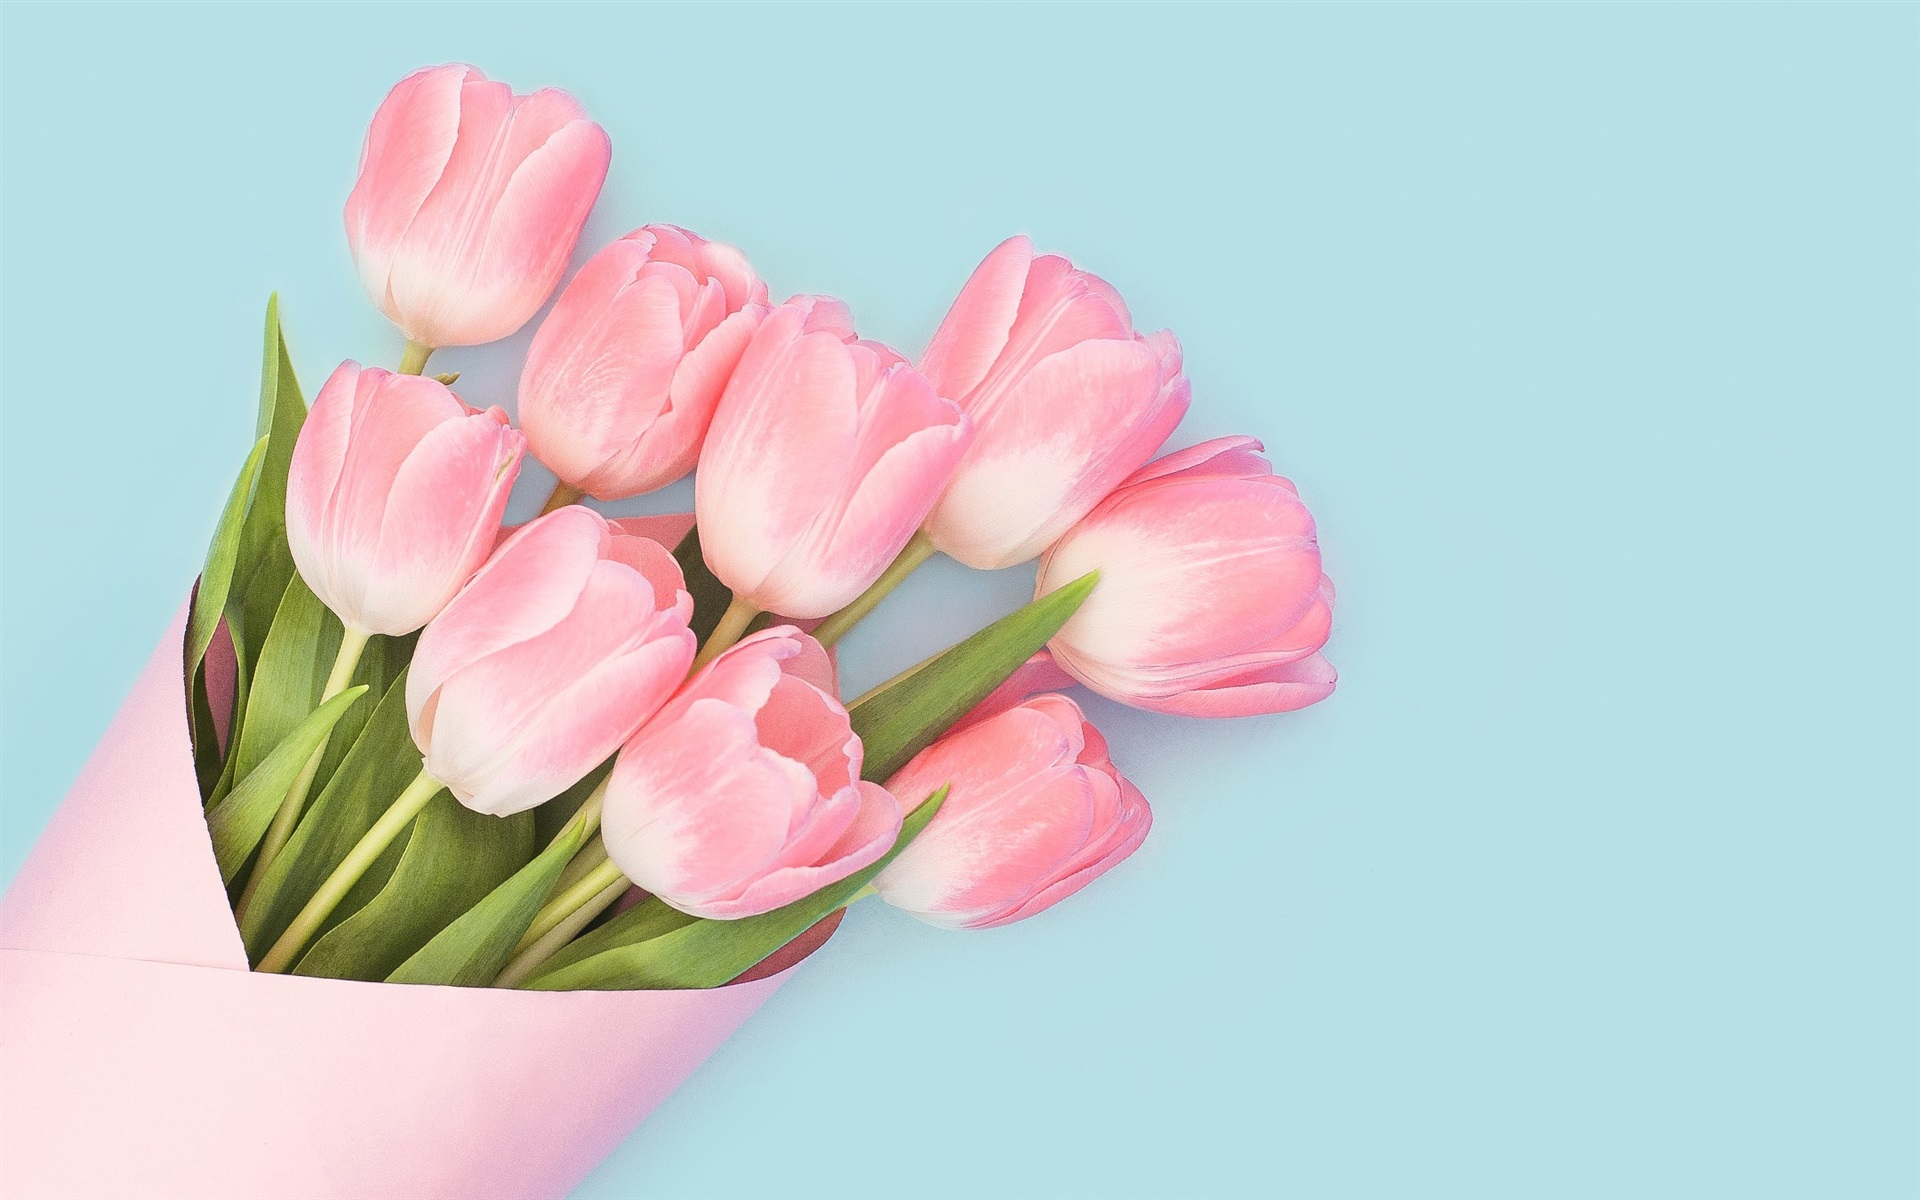 Wallpaper Pink Tulips Bouquet Blue Background 1920x1200 Hd Picture Image